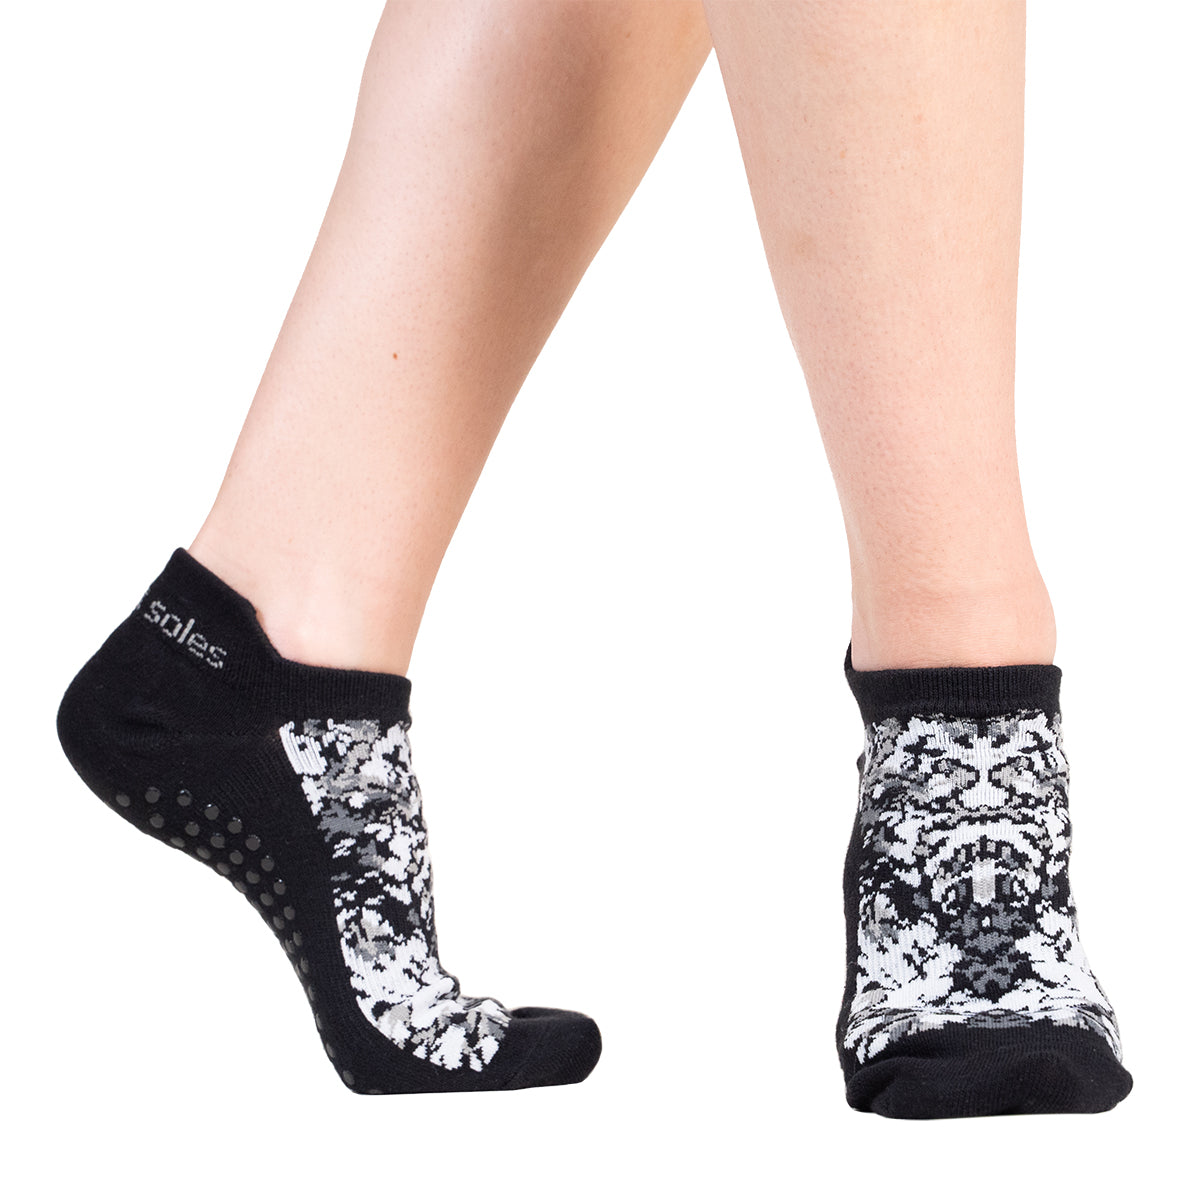 Japanese black and white pattern Grip sock for Pilates Barre,Yoga, and home